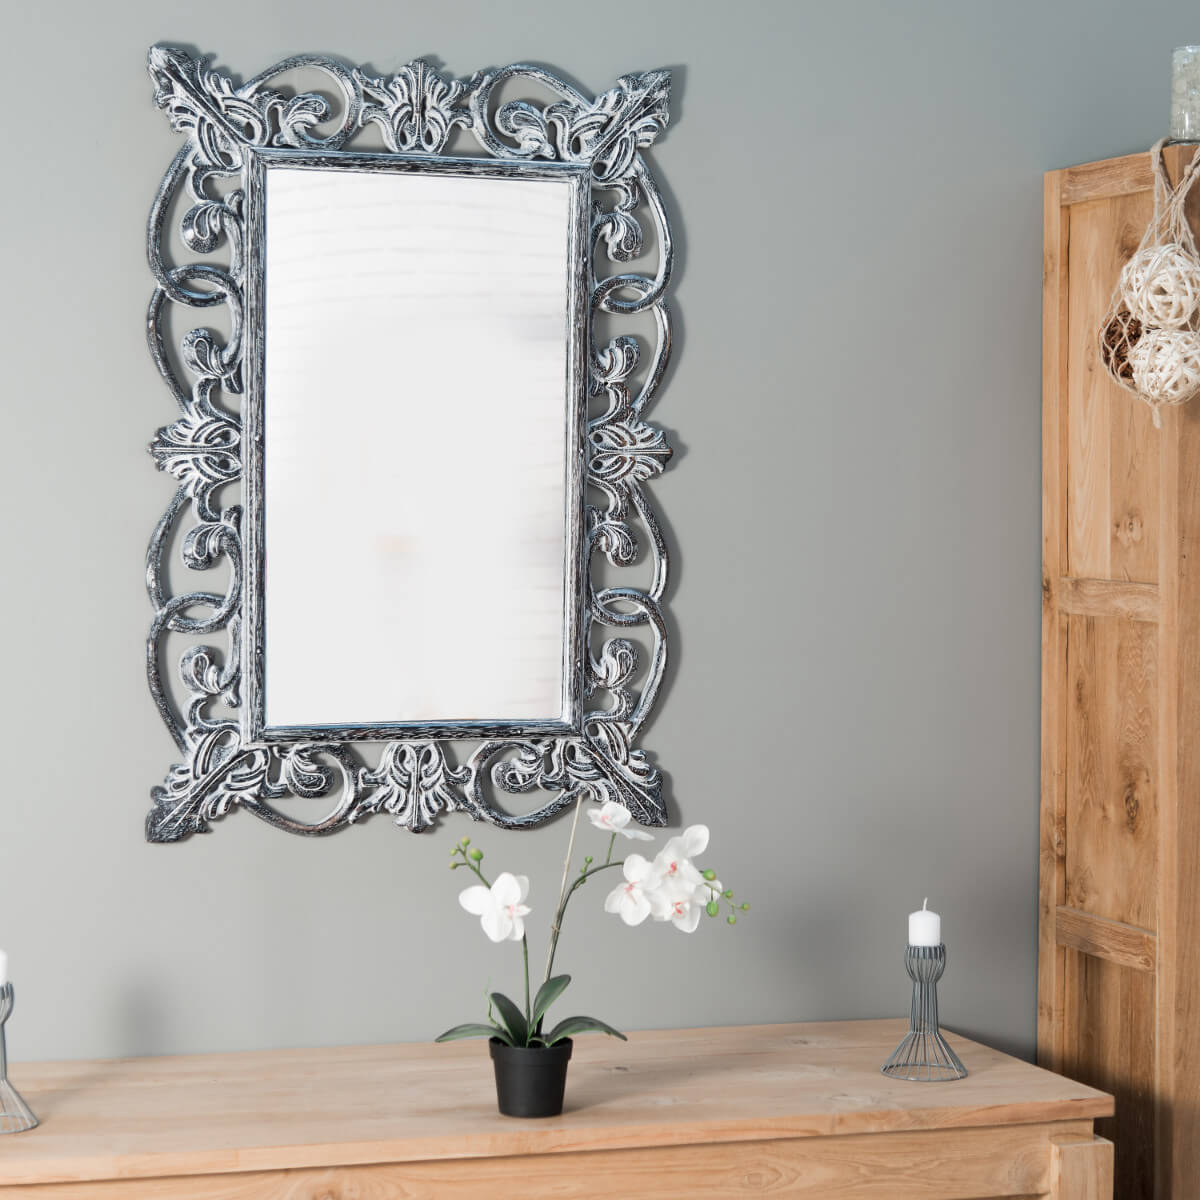 miroir de d coration en bois massif cordoue rectangulaire bois patin c rus argent d. Black Bedroom Furniture Sets. Home Design Ideas